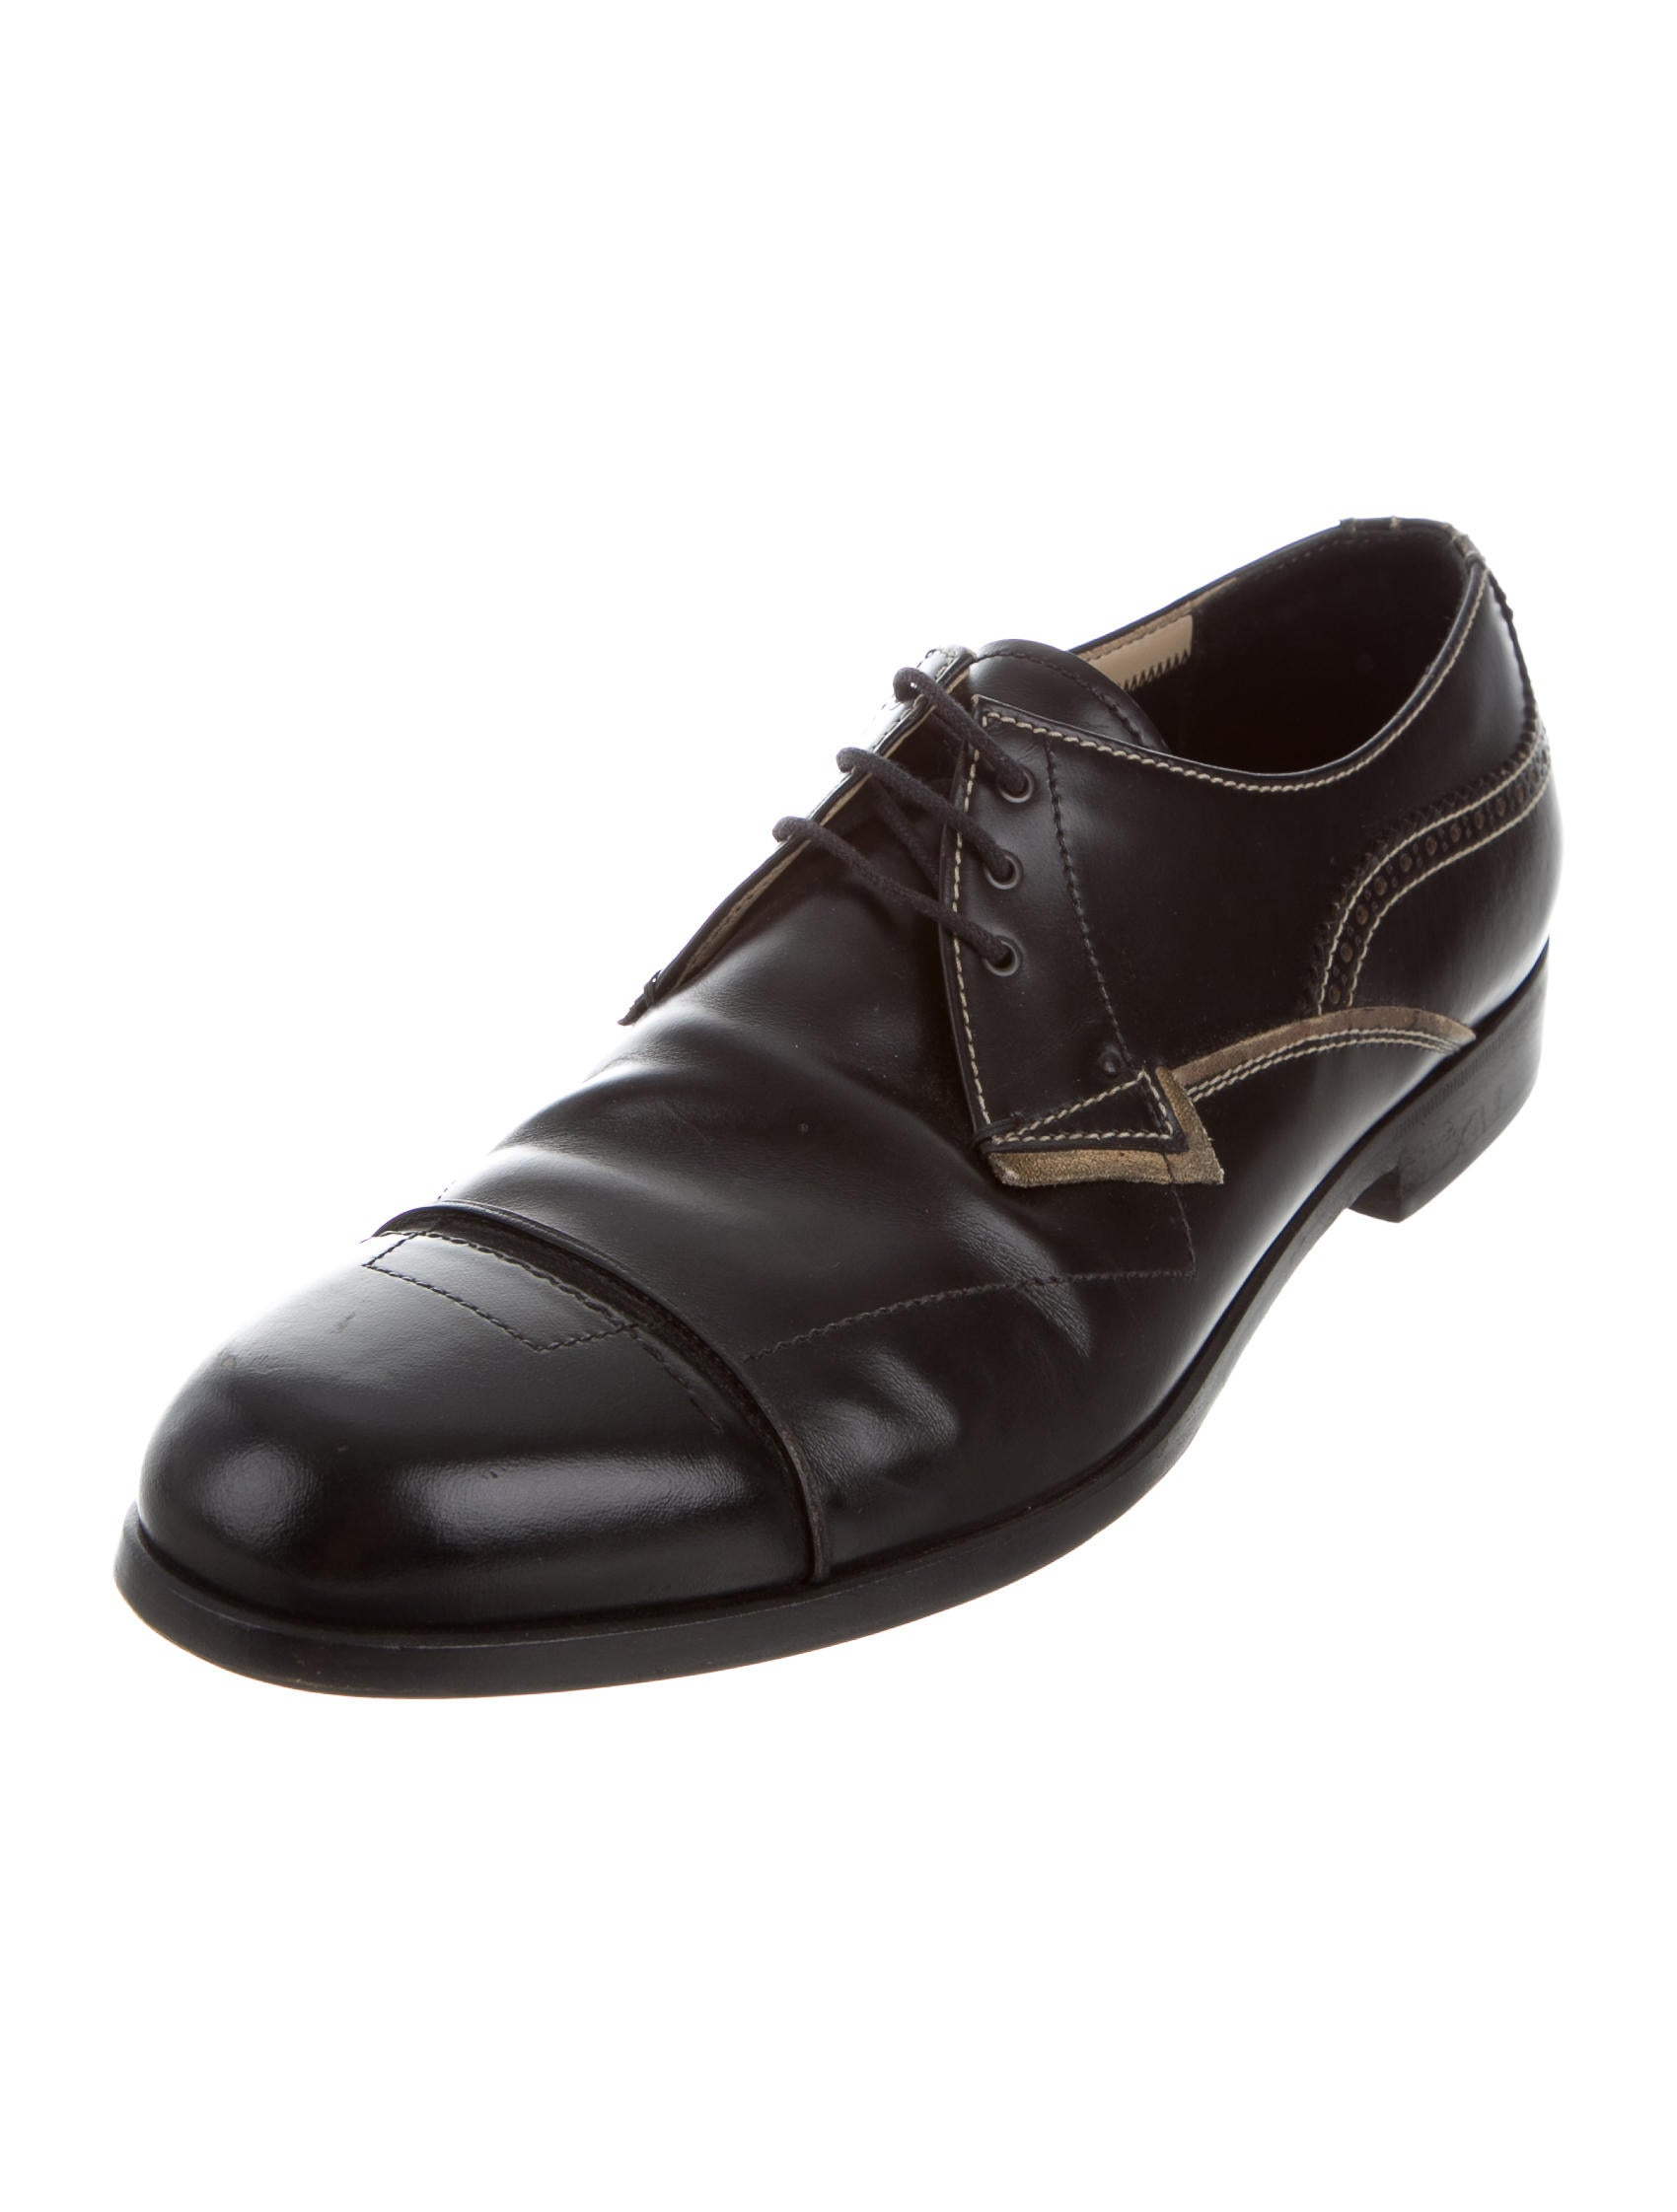 prada leather derby shoes shoes pra156978 the realreal